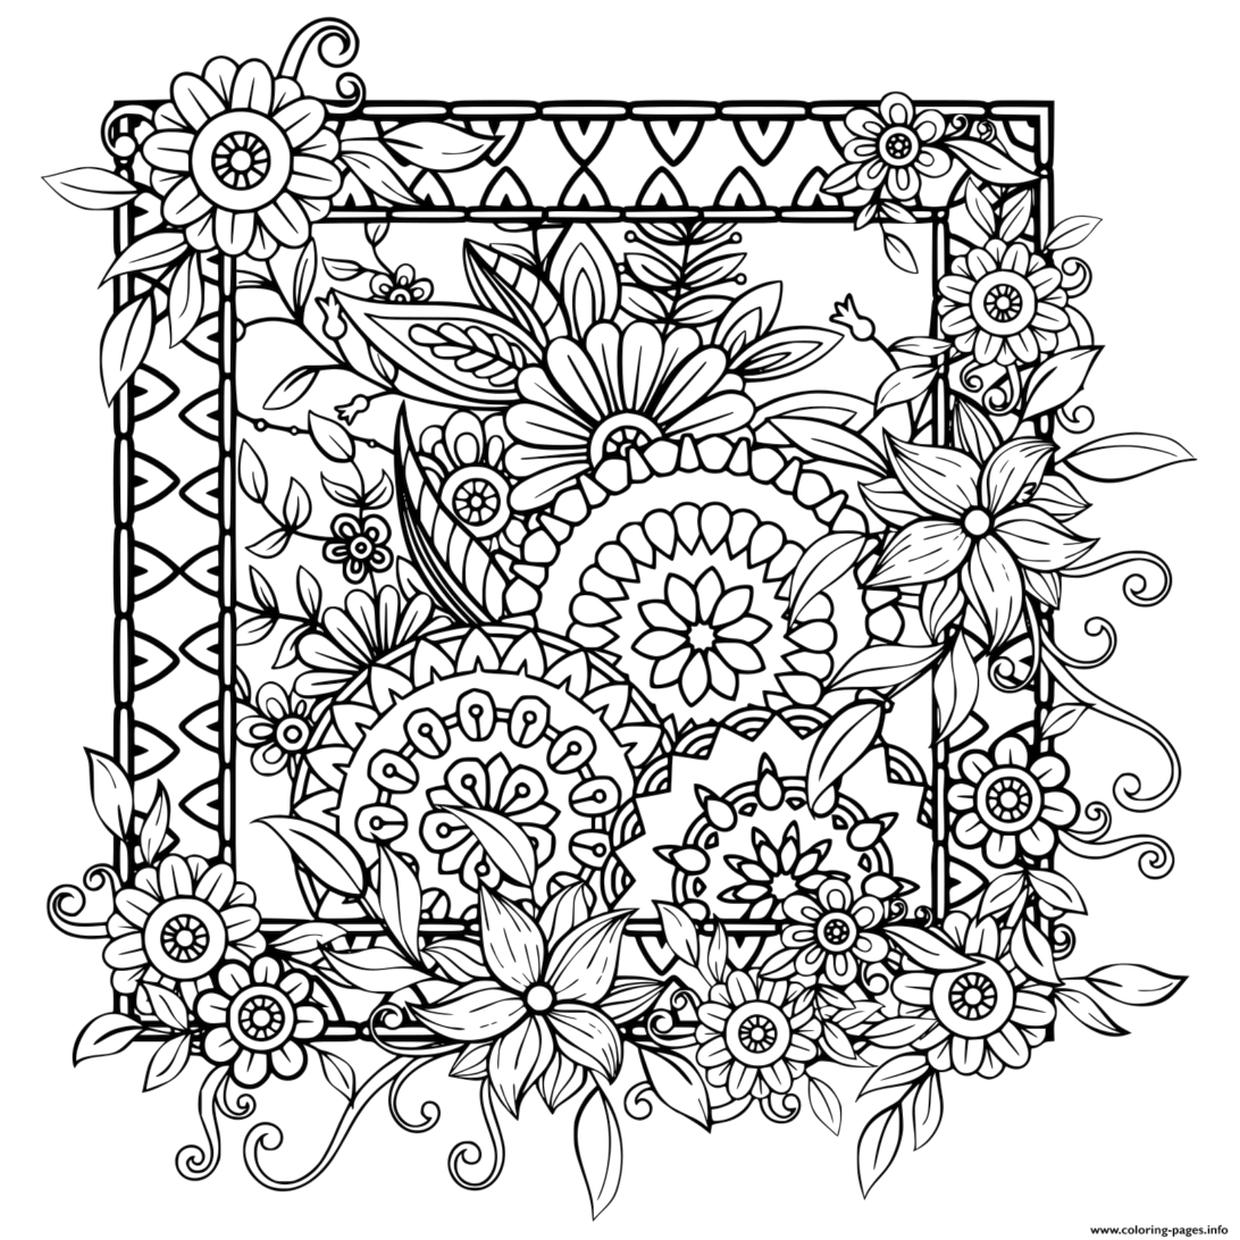 Get This Flower Pattern Coloring Pages to Print for Adults ...